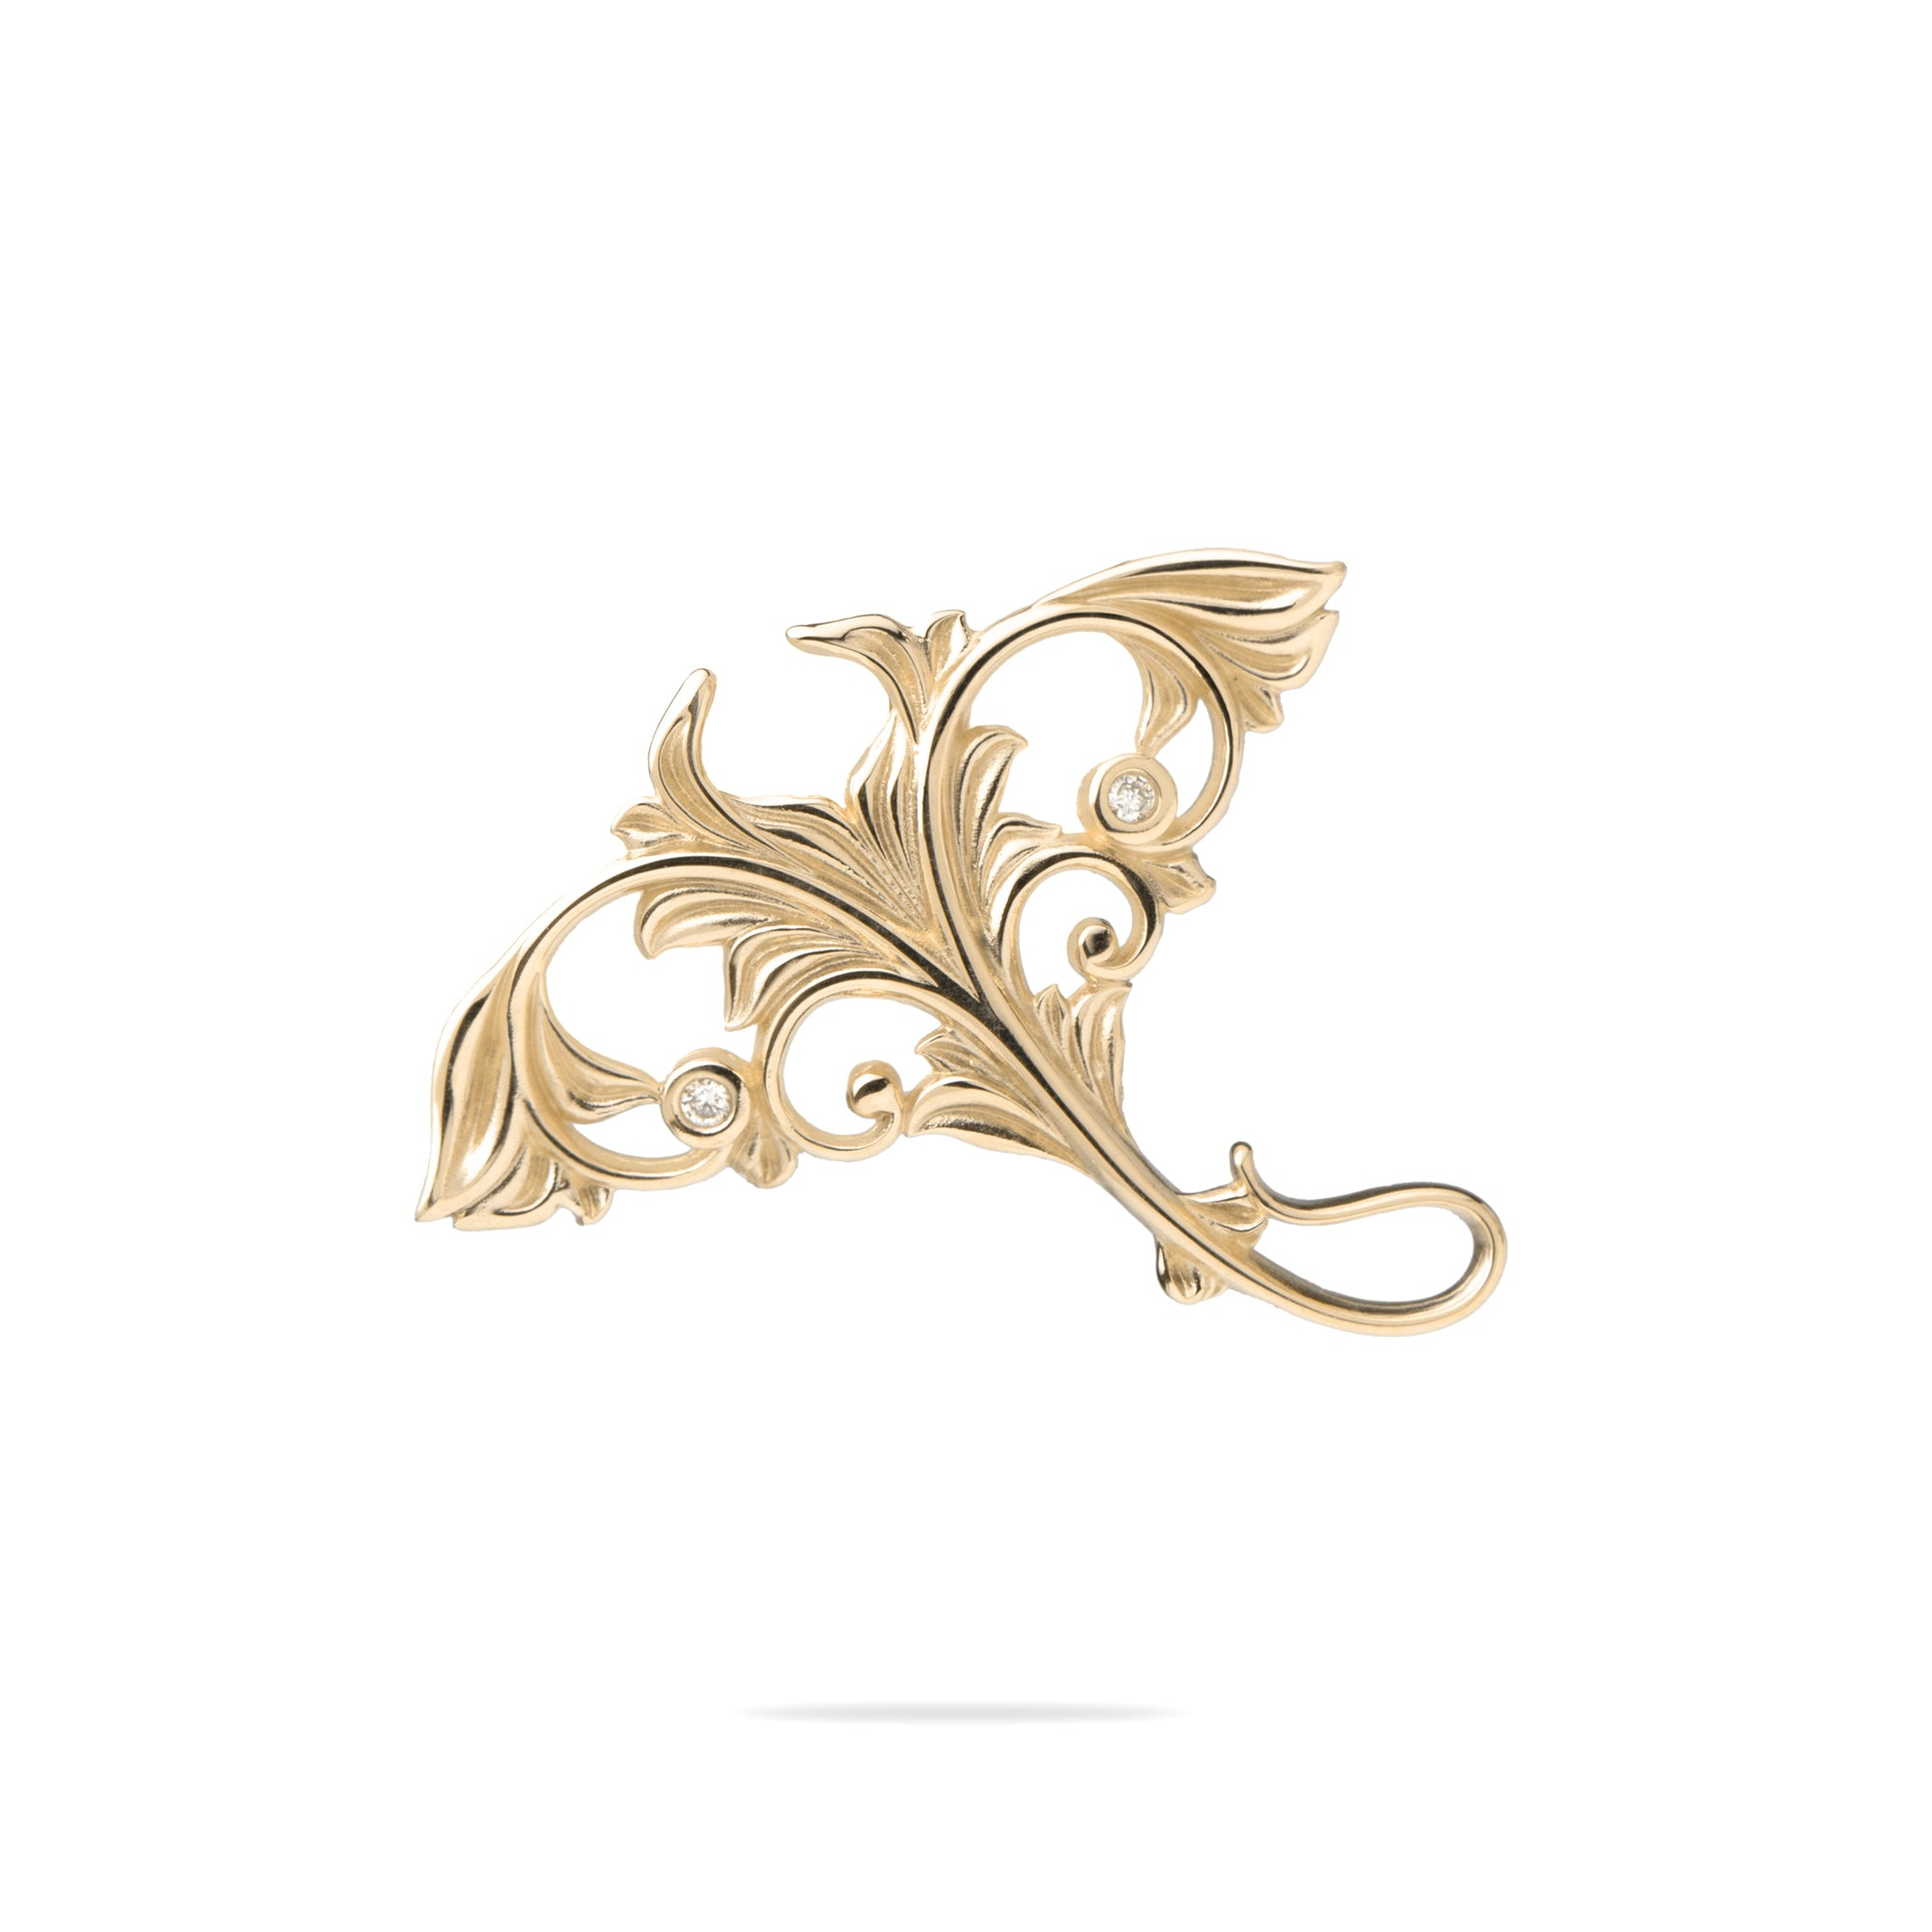 Living Heirloom Manta Ray Pendant in Gold with Diamonds - 23mm-[SKU]